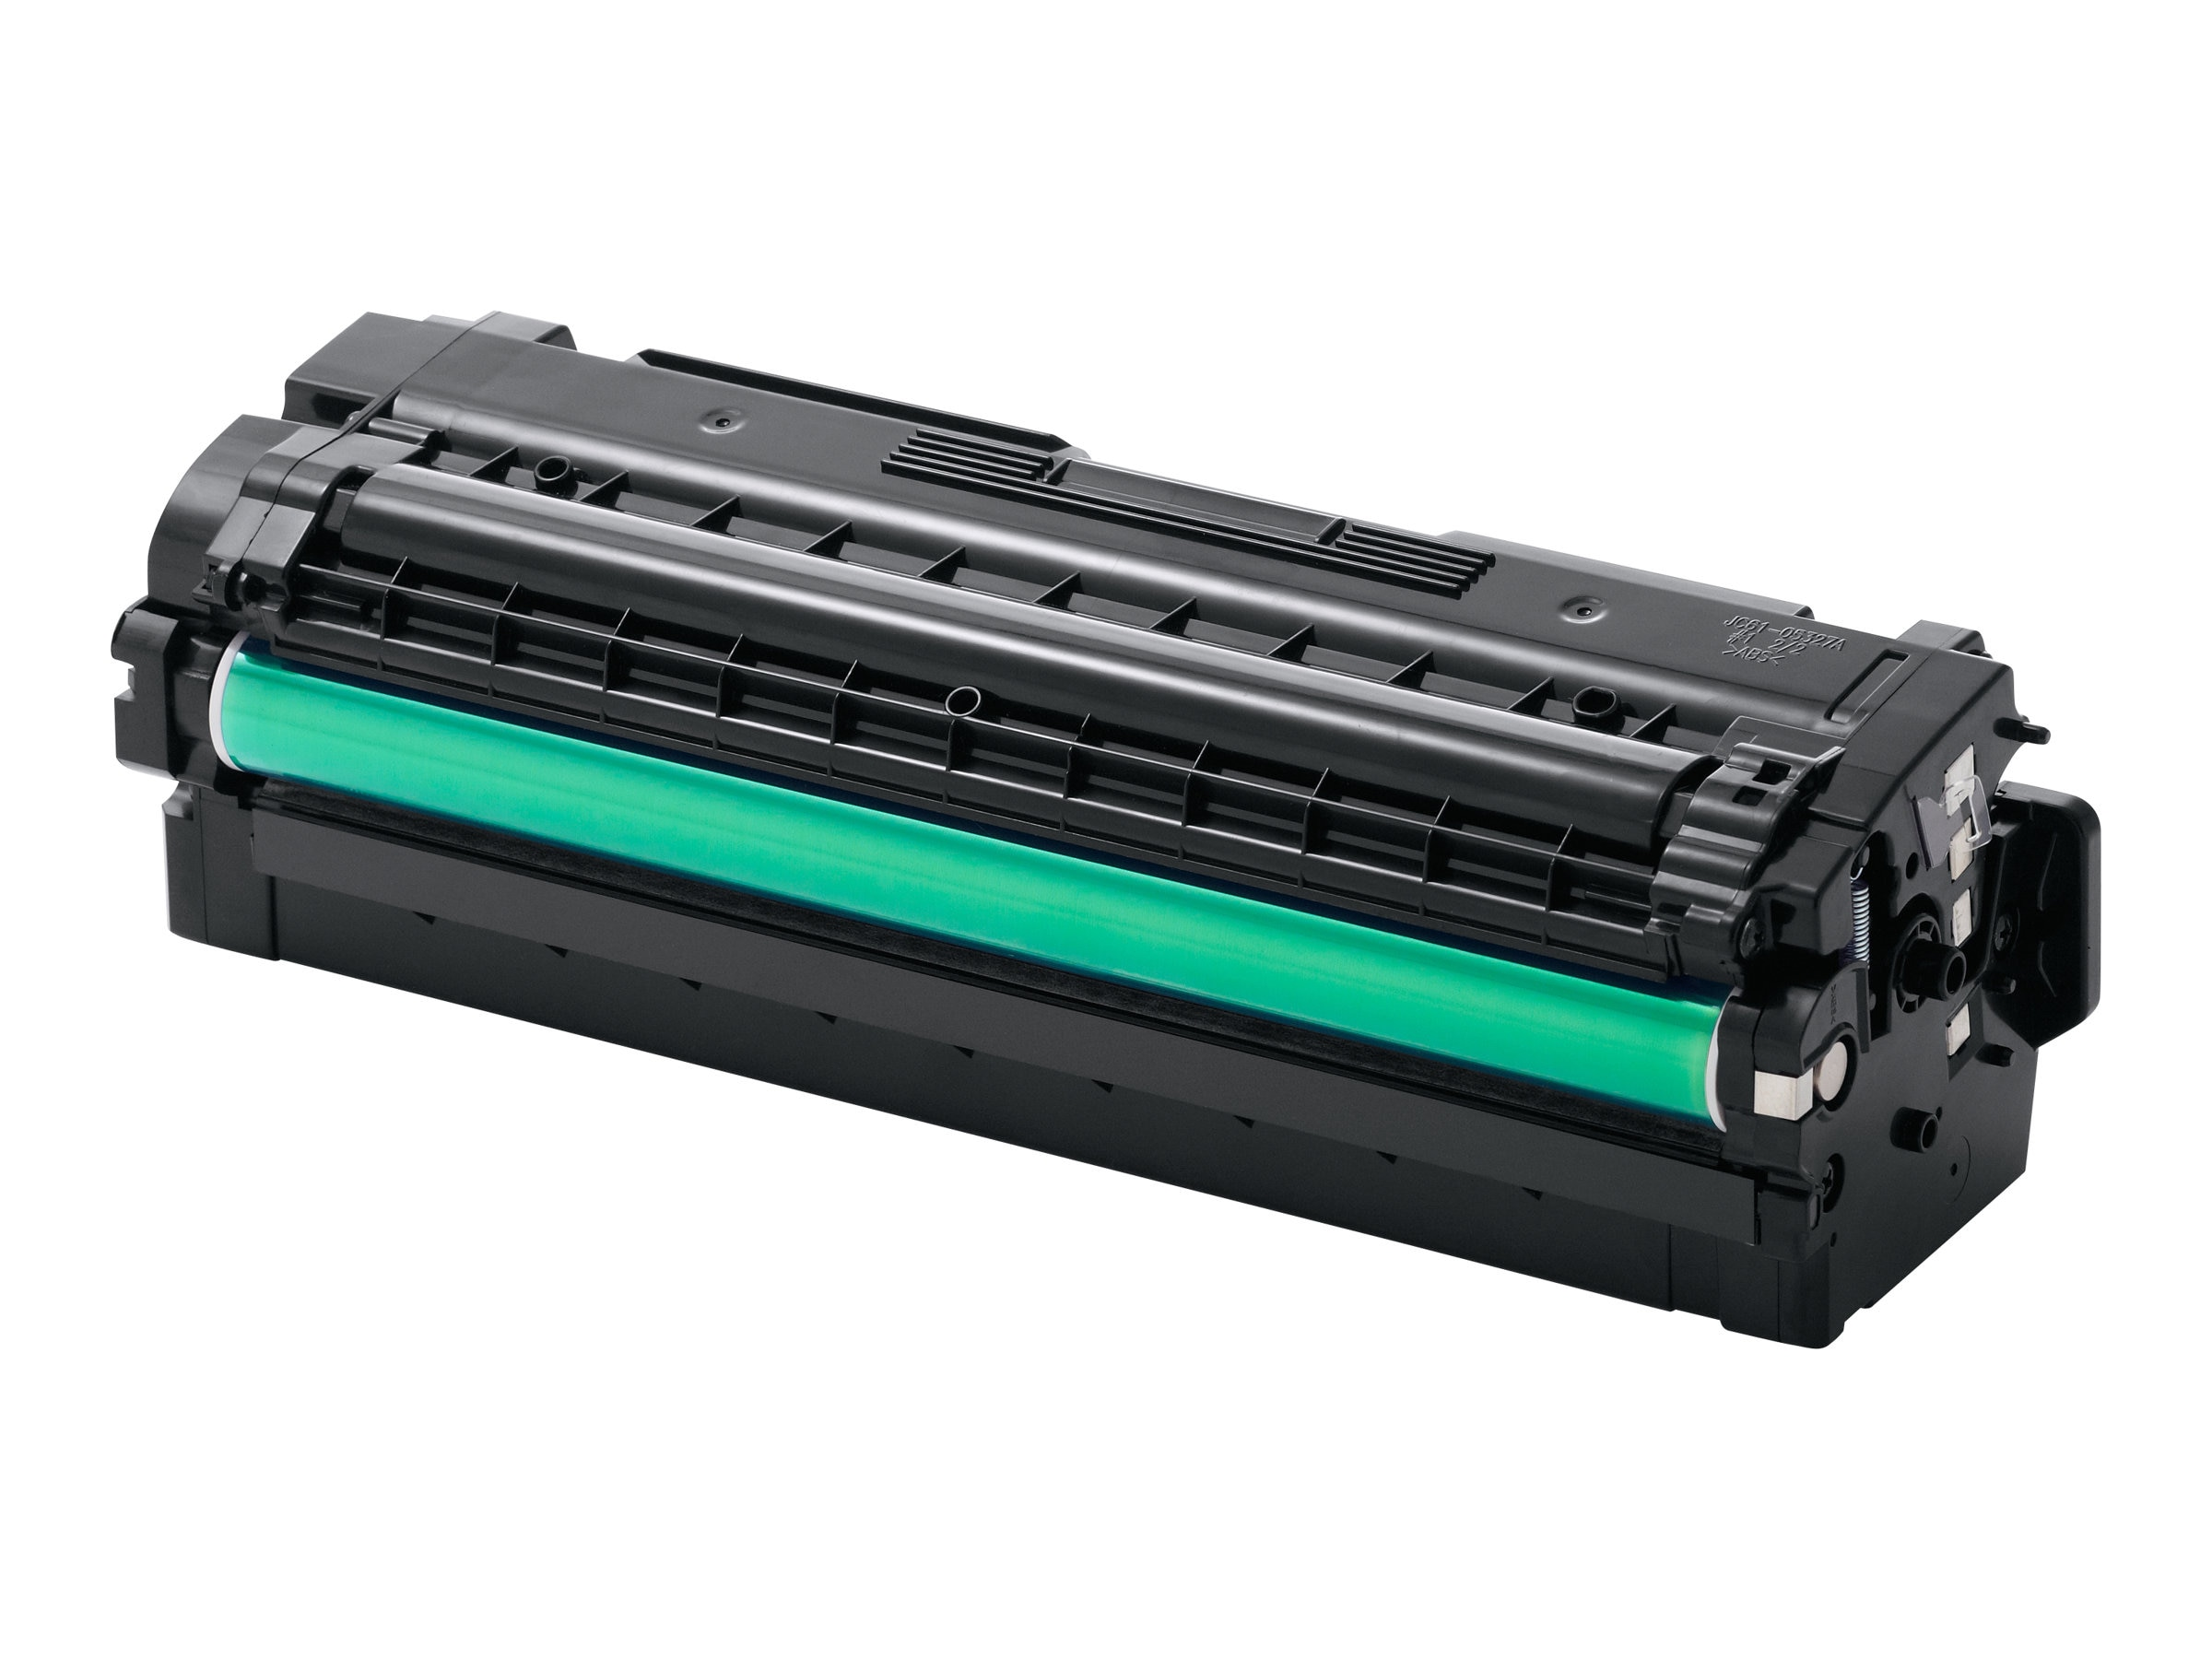 Samsung Black Toner Cartridge for CLP-680ND Color Laser Printer & CLX-6260FW & CLX-6260FD Color MFPs